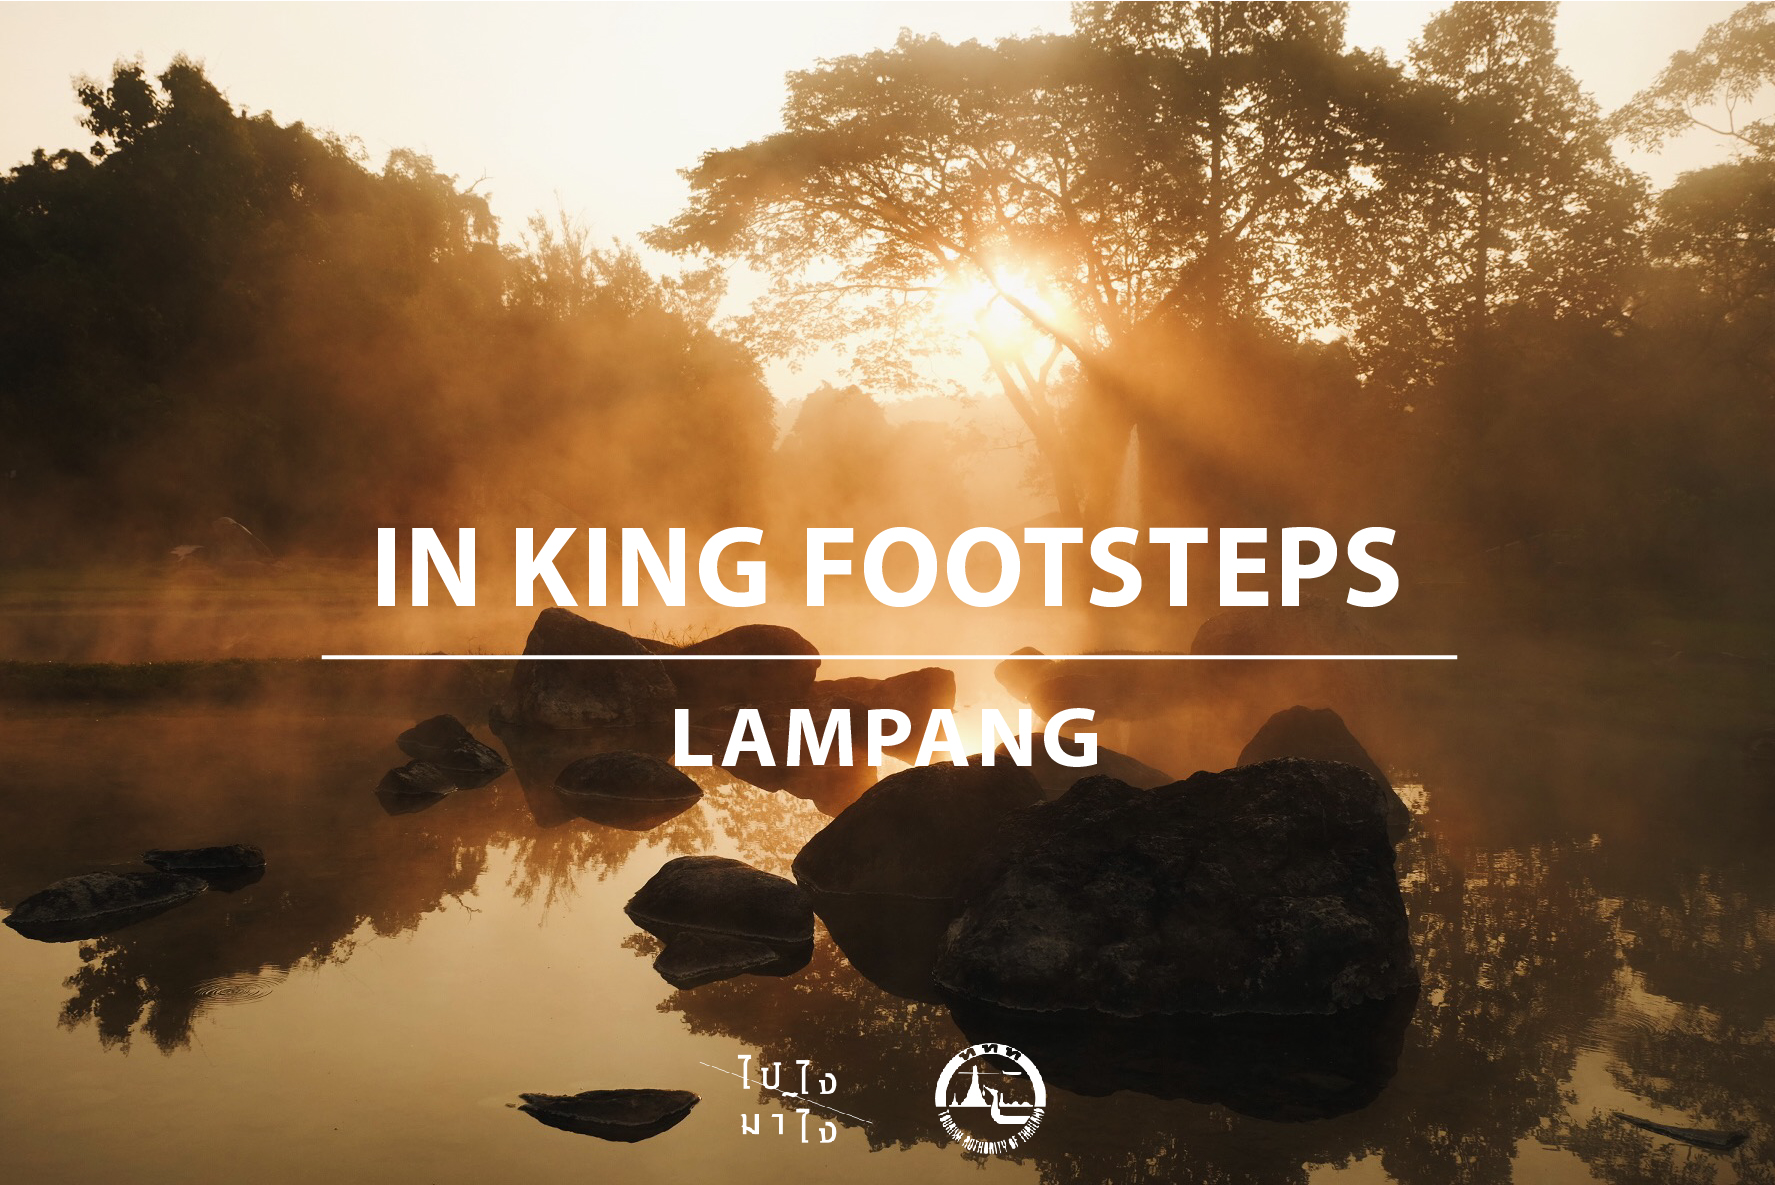 IN KING FOOTSTEPS, LAMPANG